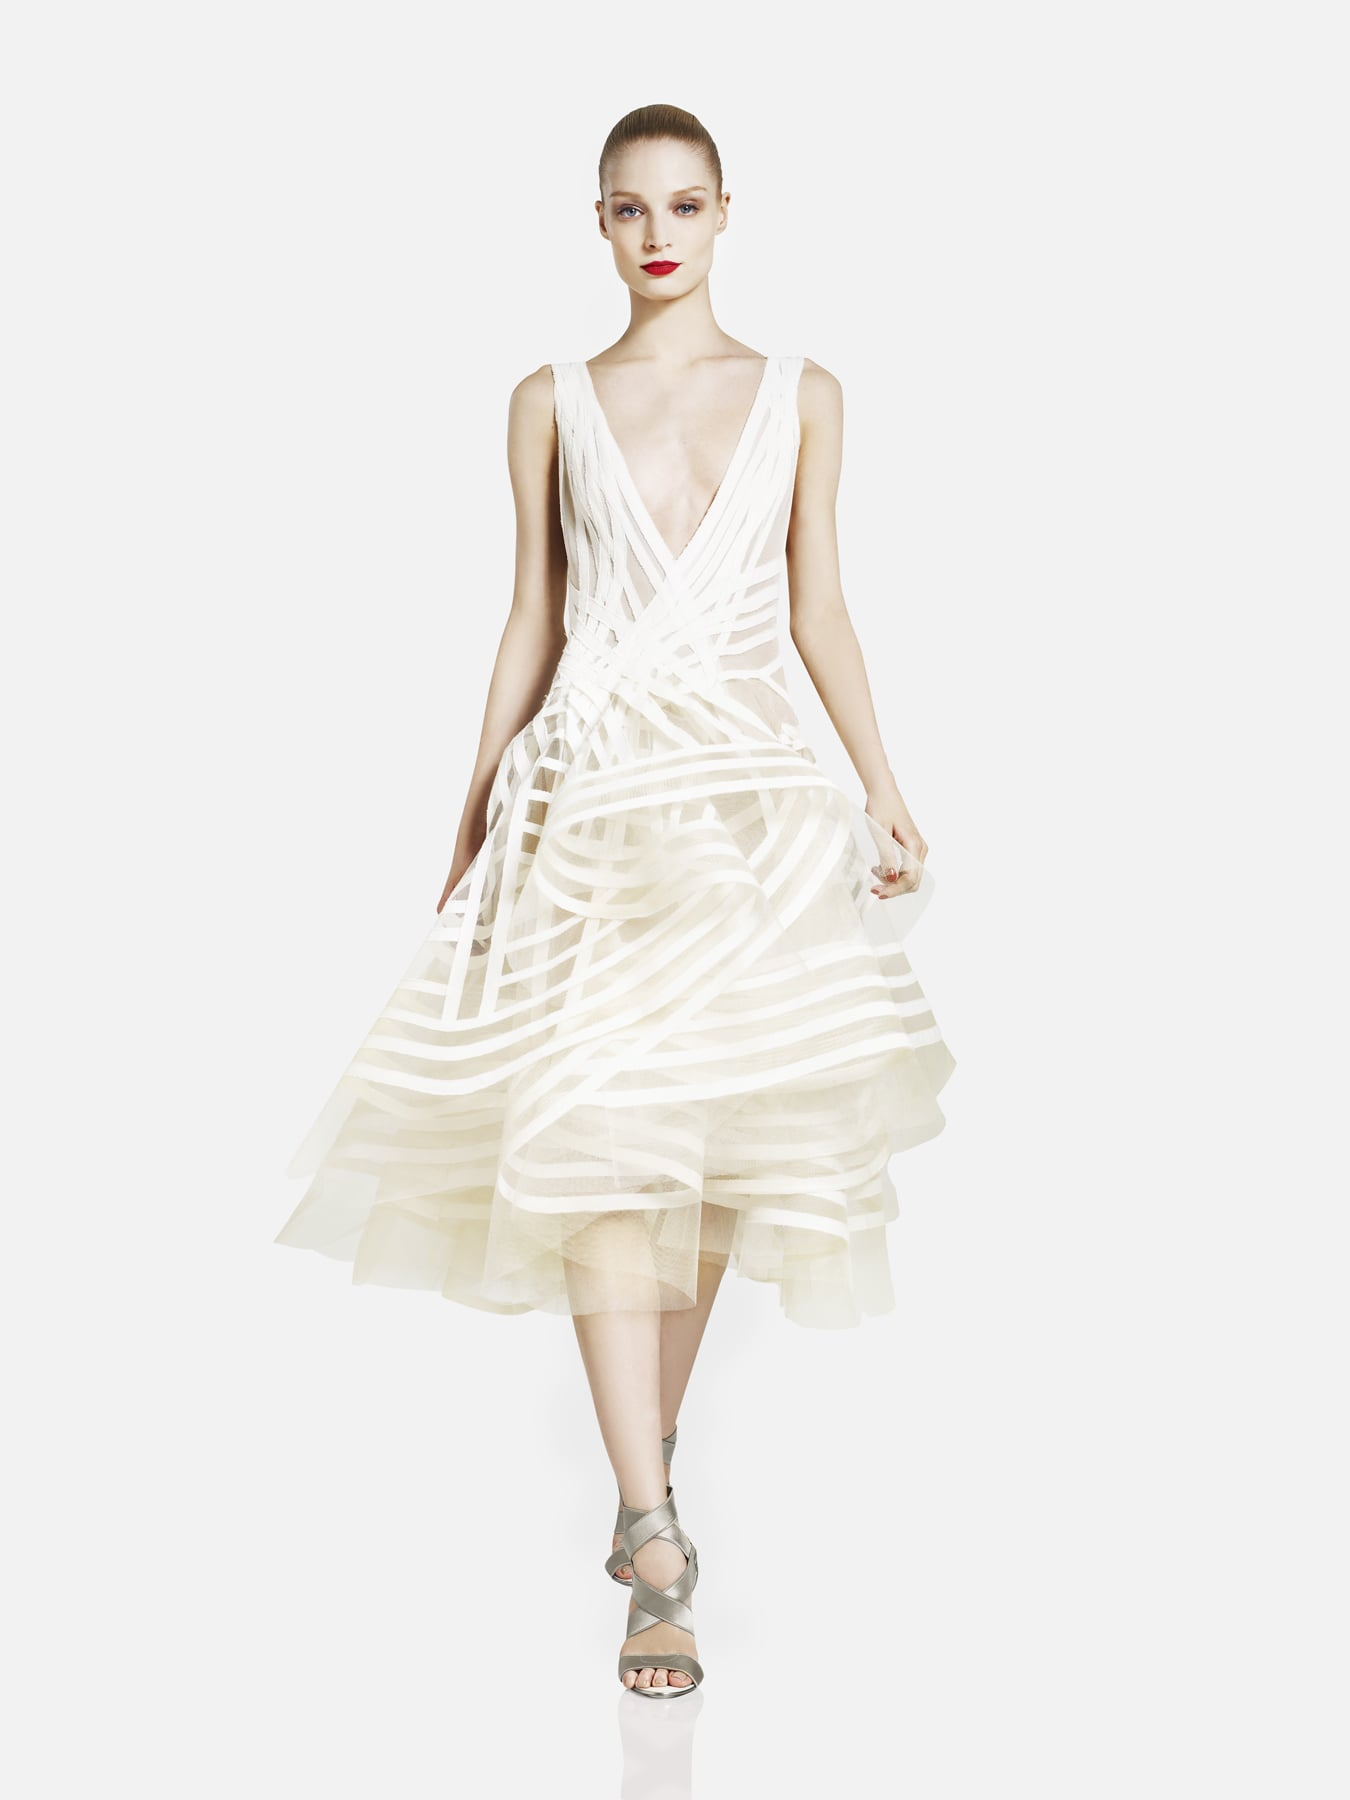 Donna Karan Resort 2012 Collection Photos | POPSUGAR Fashion